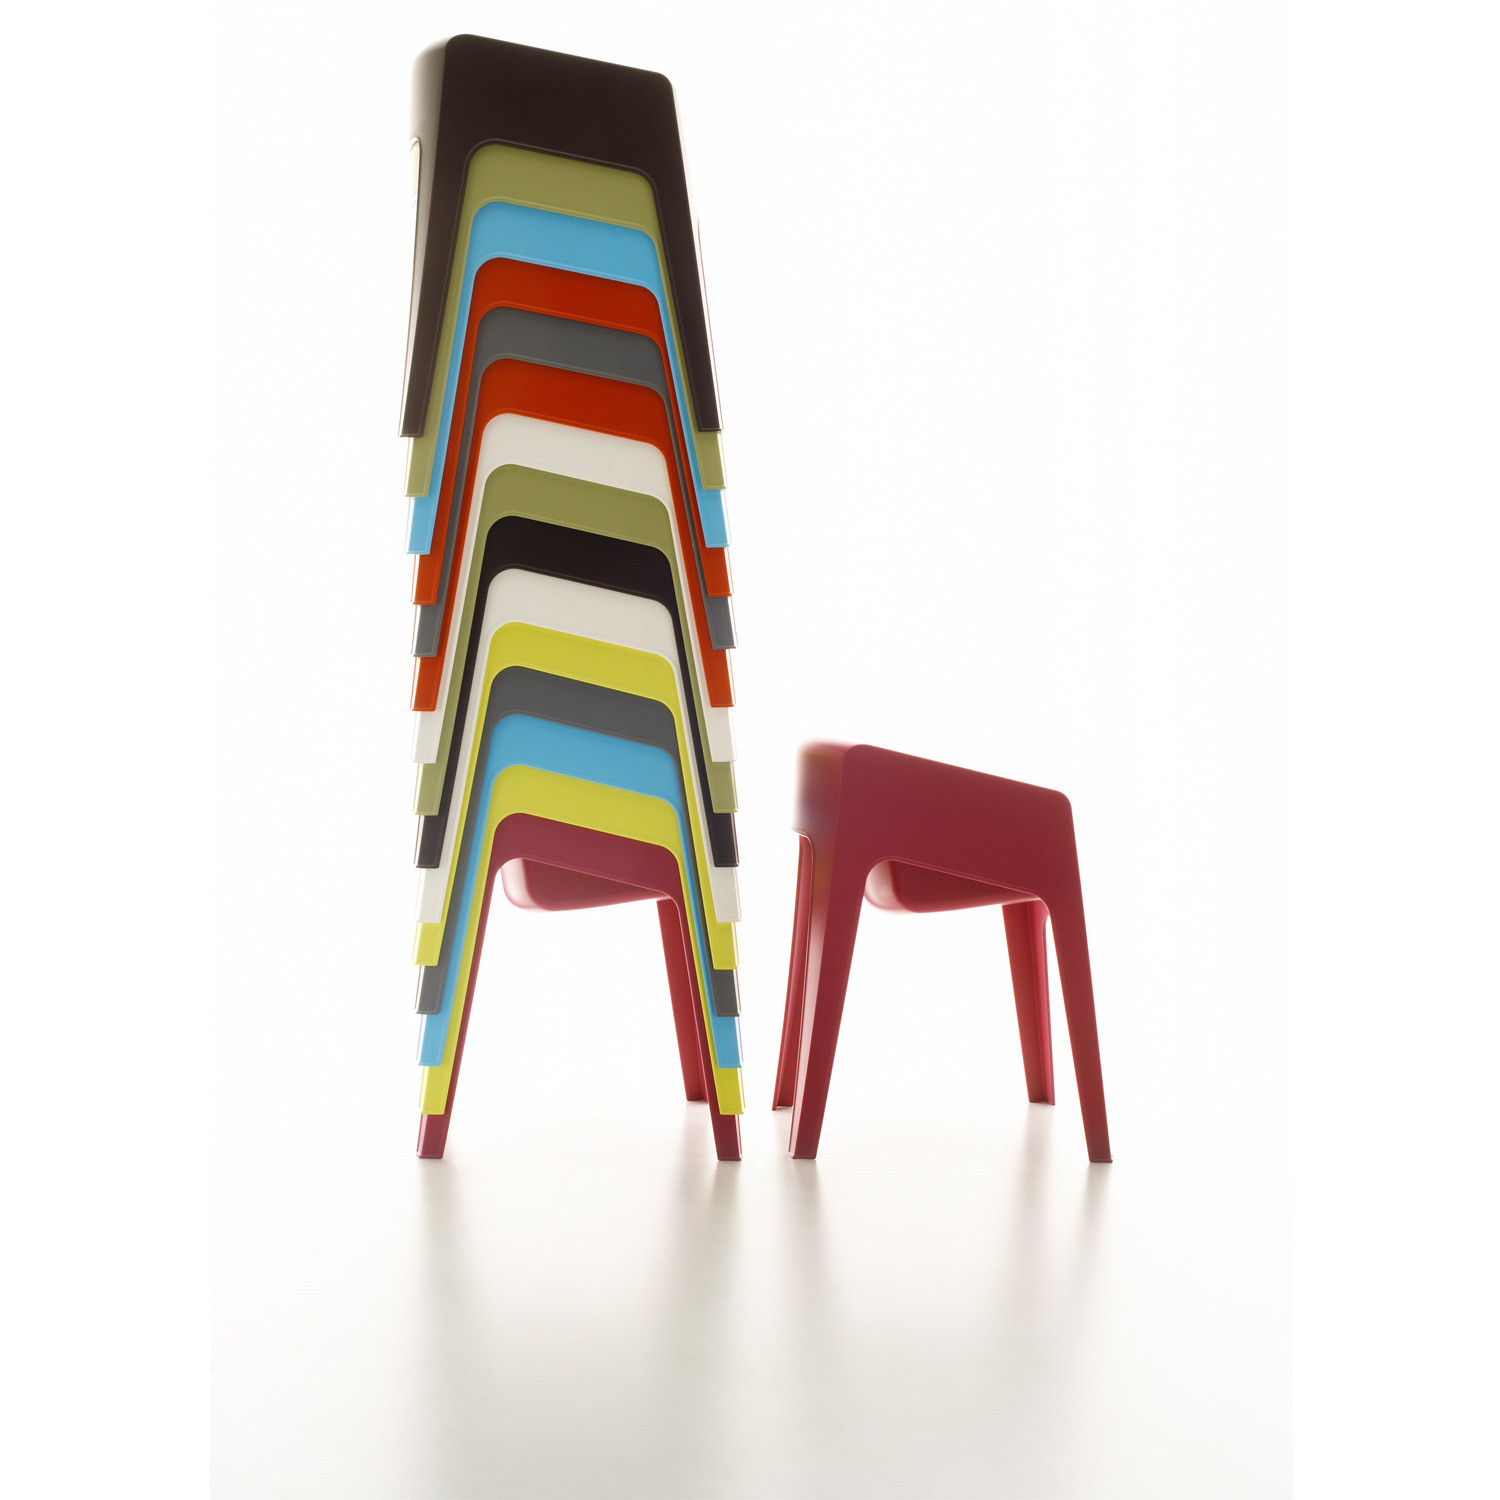 Tototo Stacking Chairs